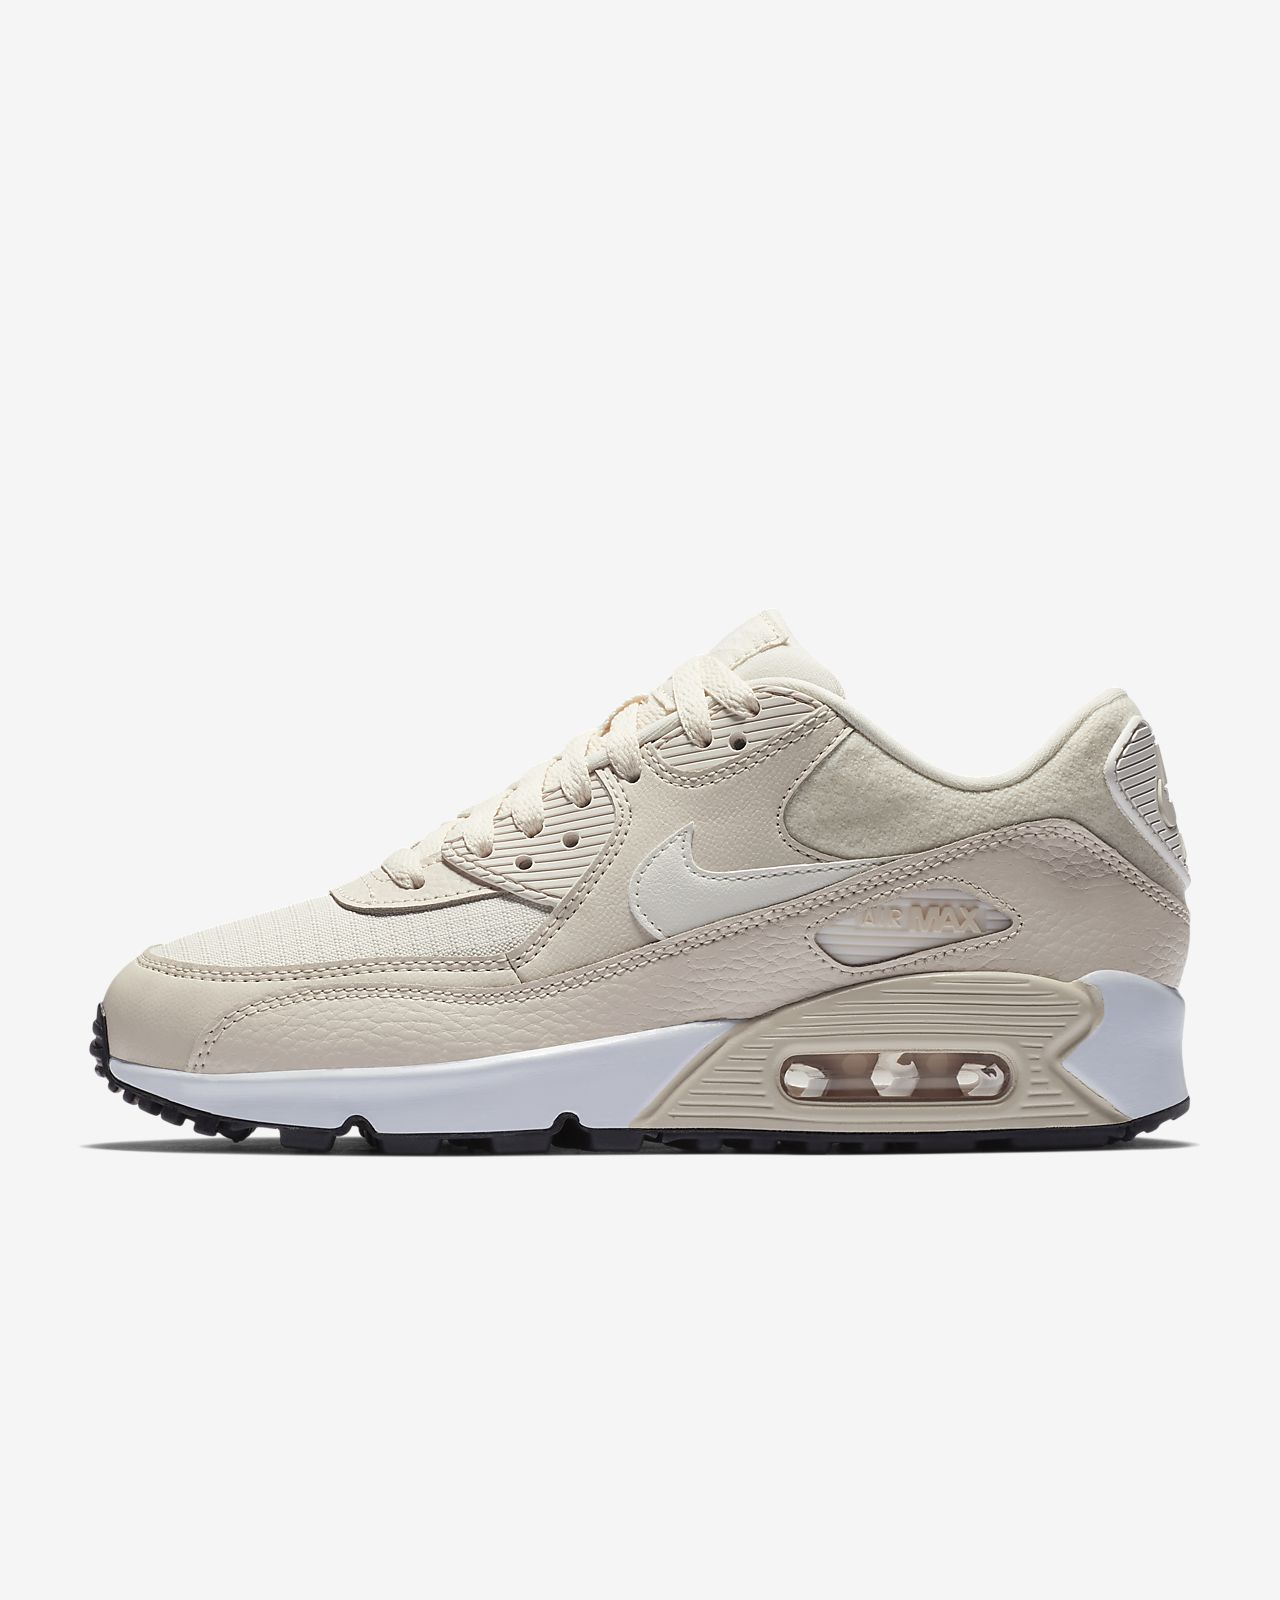 Women air max 90 Nike pictures